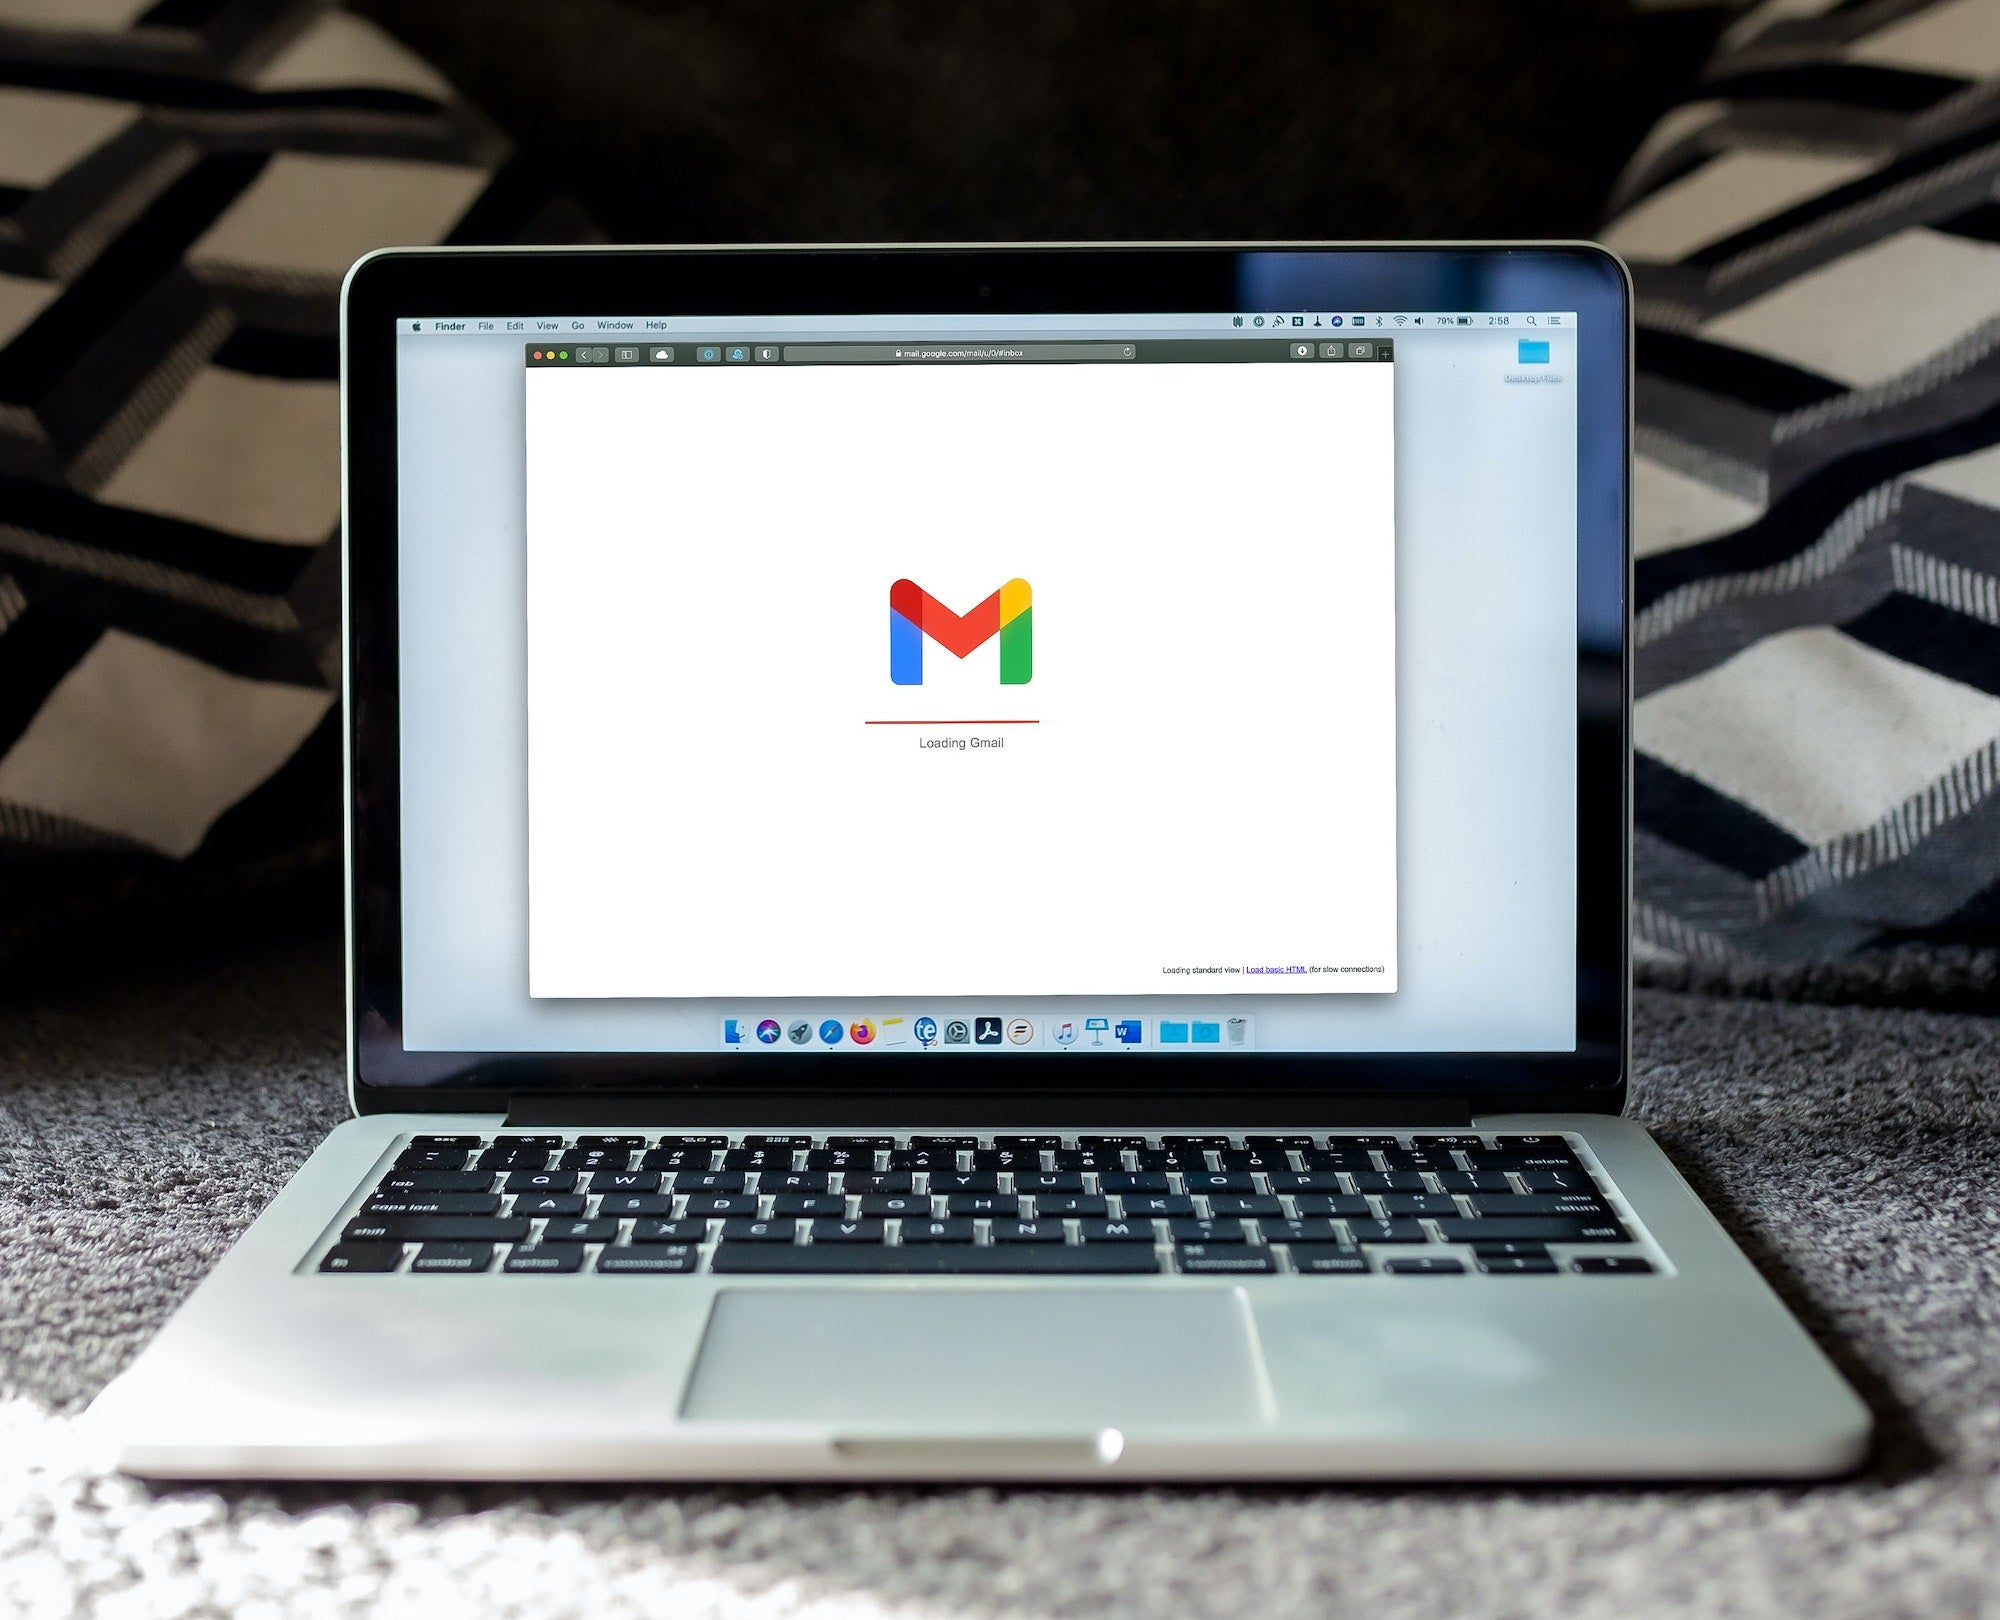 A MacBook displays a loading Gmail icon.